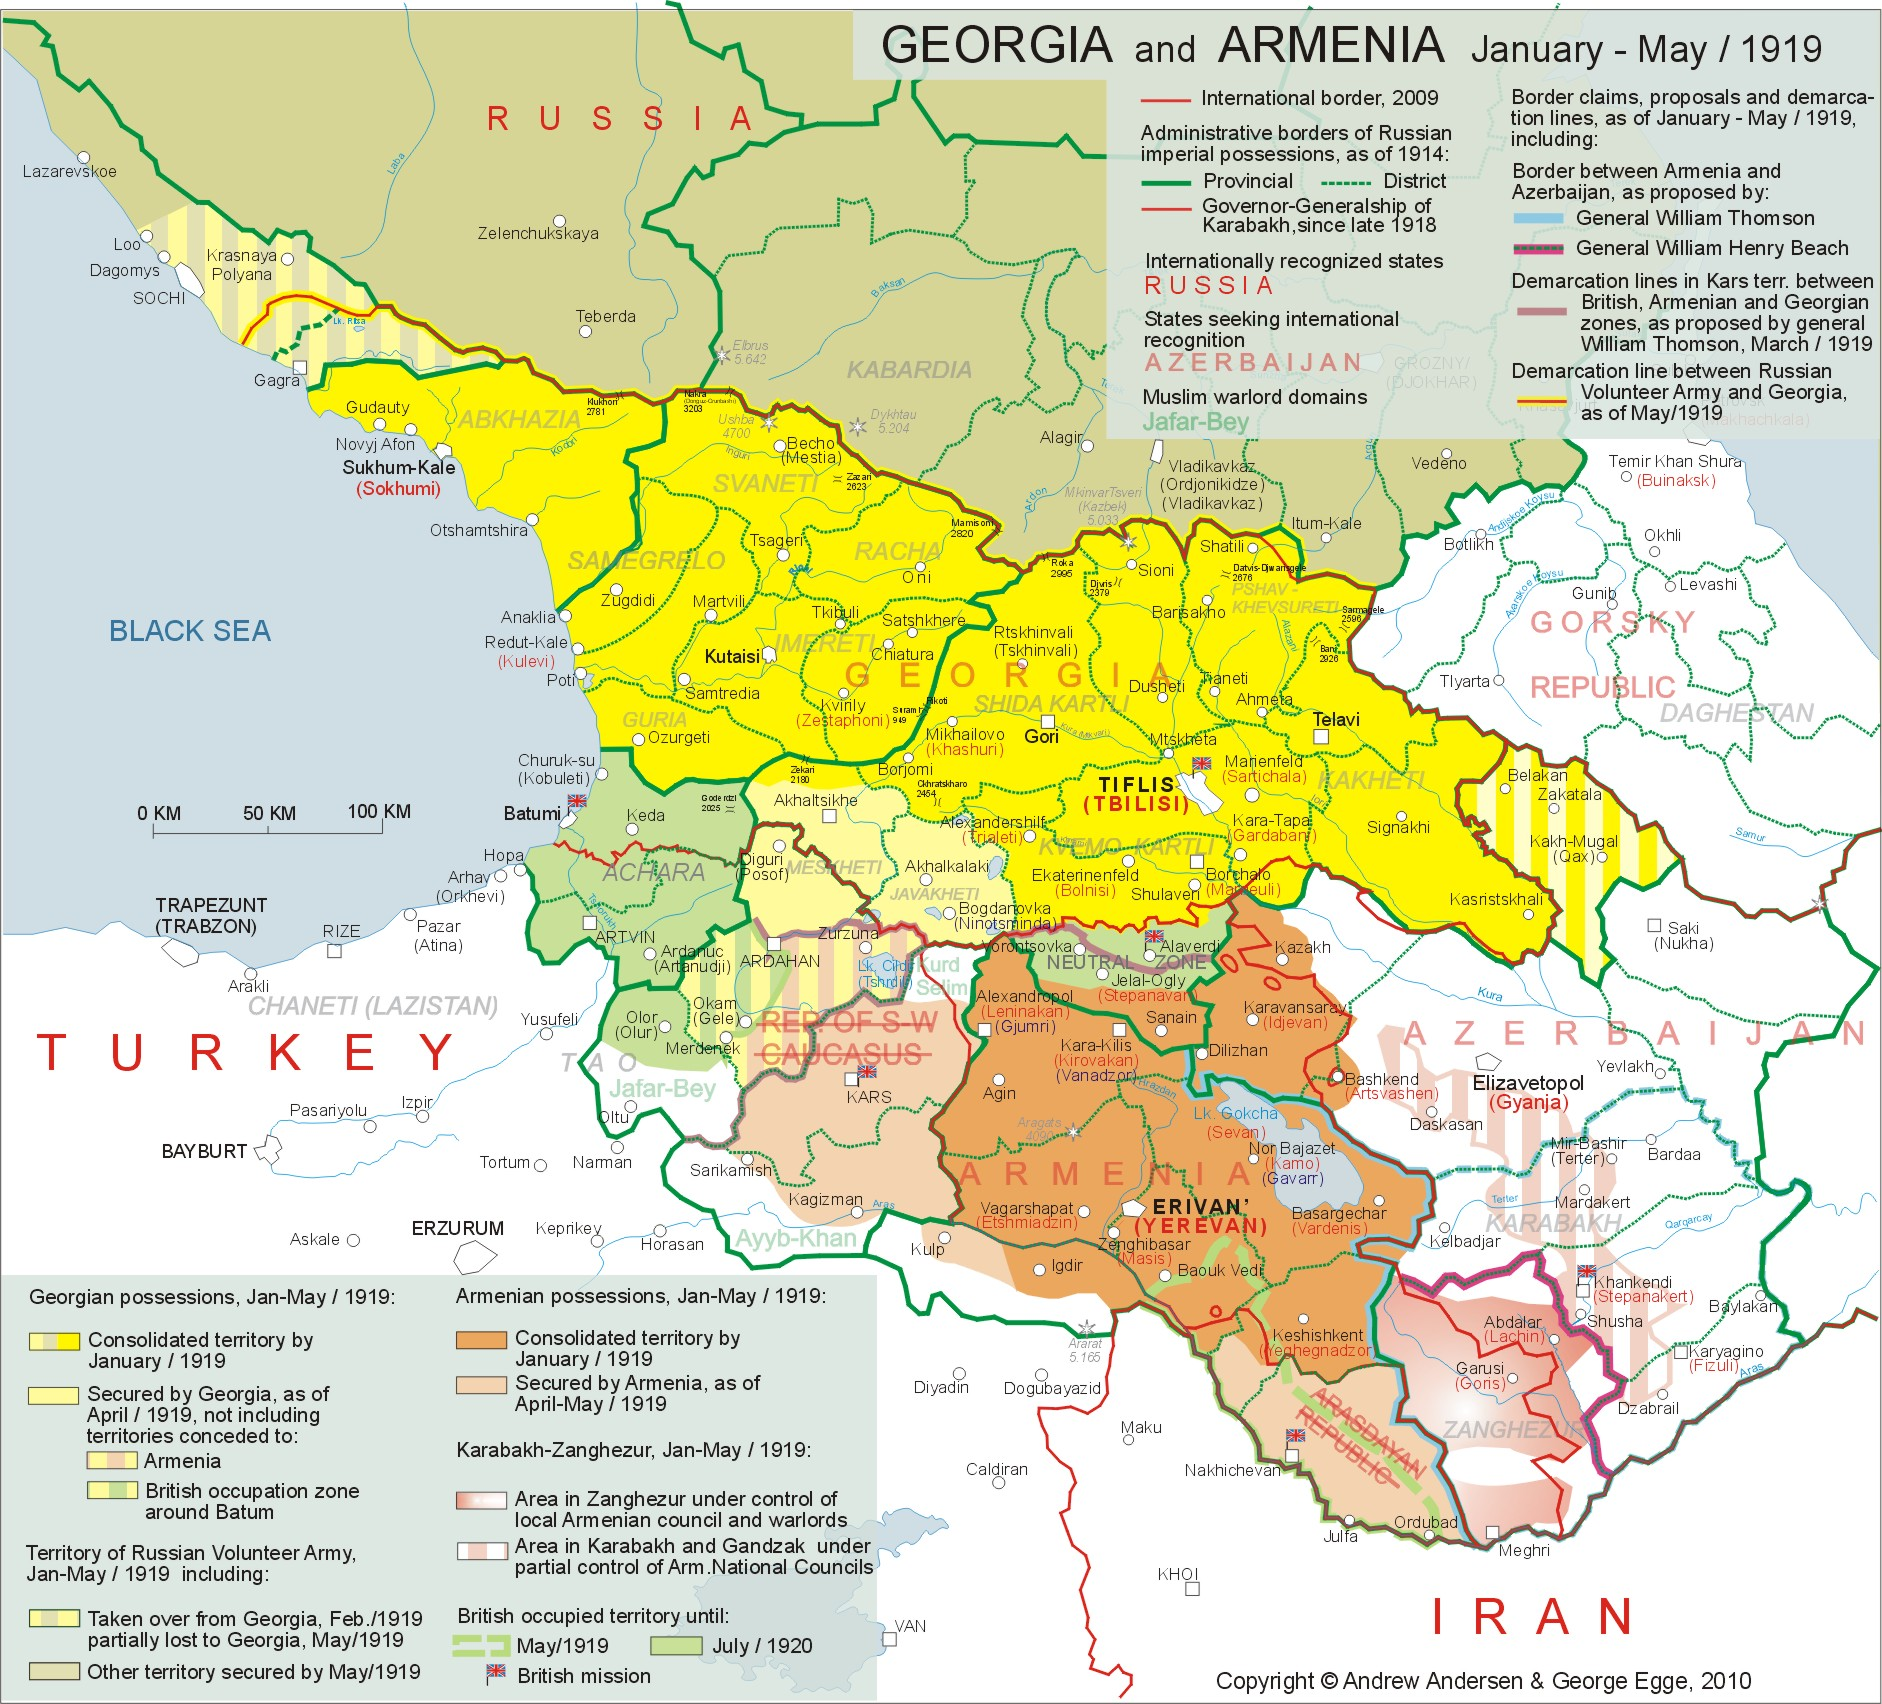 http://www.conflicts.rem33.com/images/Armenia/restoration%20and%20terr%20issue/KARTEN/MAP_4_transcaucasus_1919_A.JPG